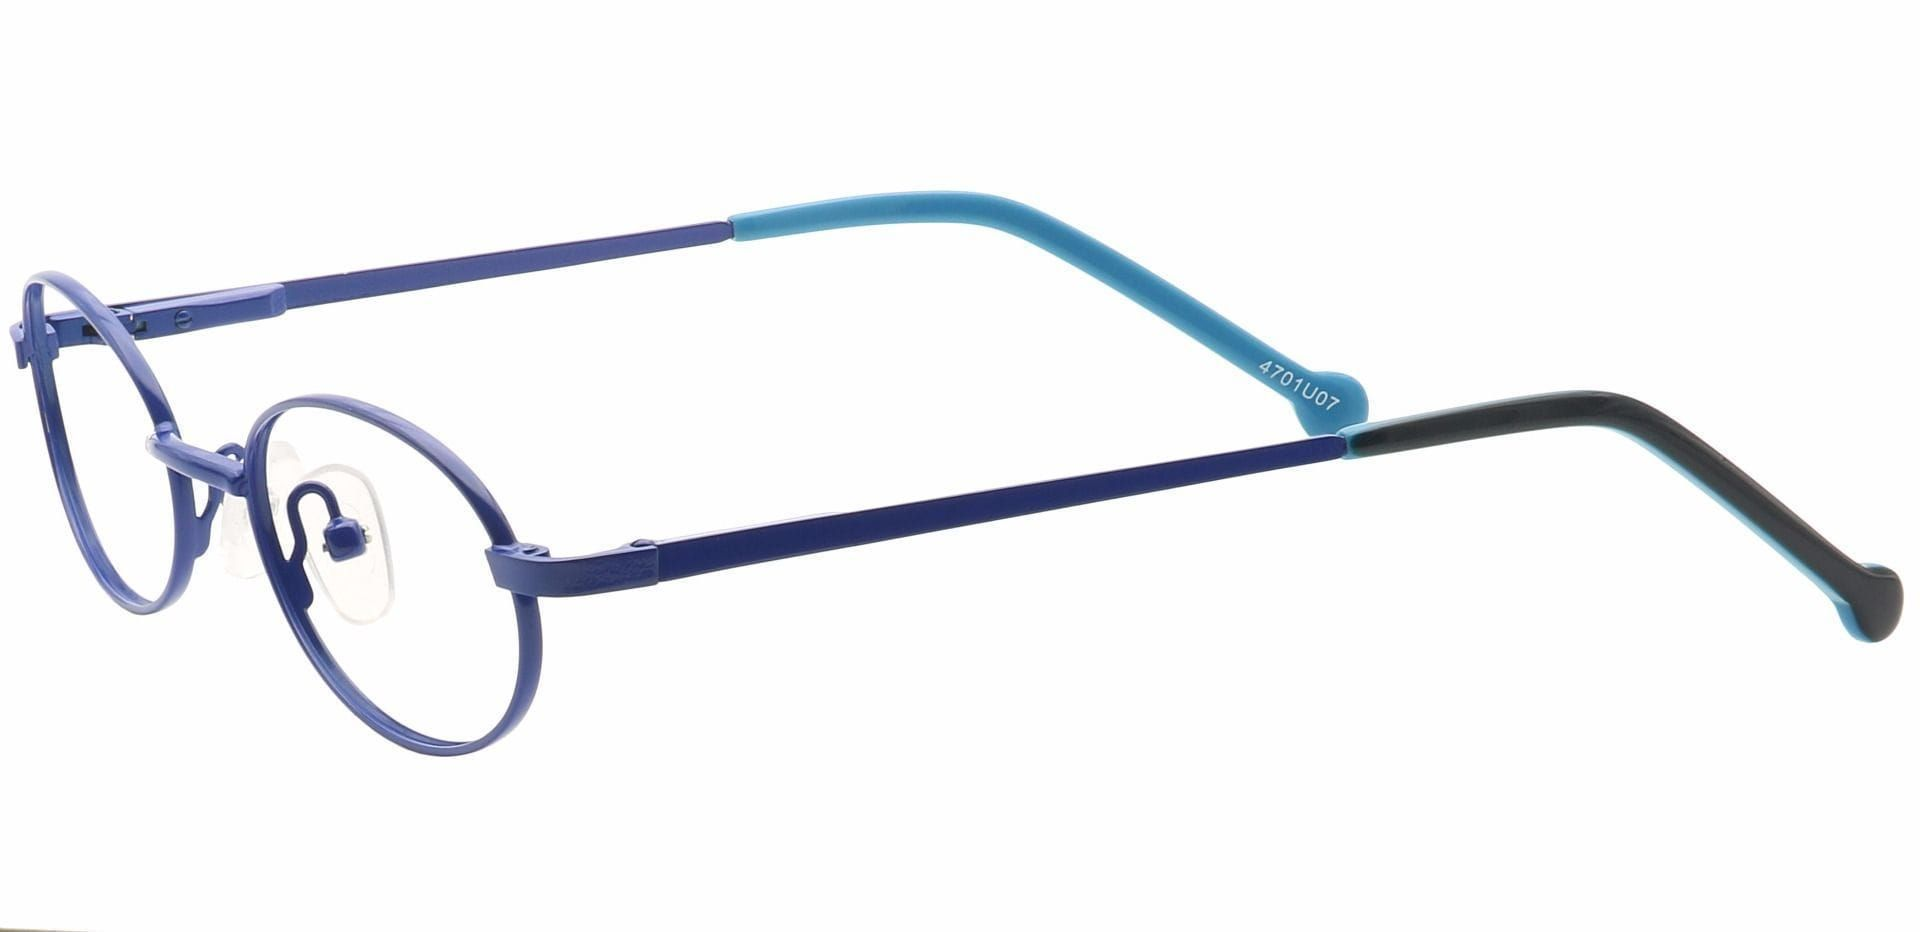 Lara Oval Non-Rx Glasses - Blue